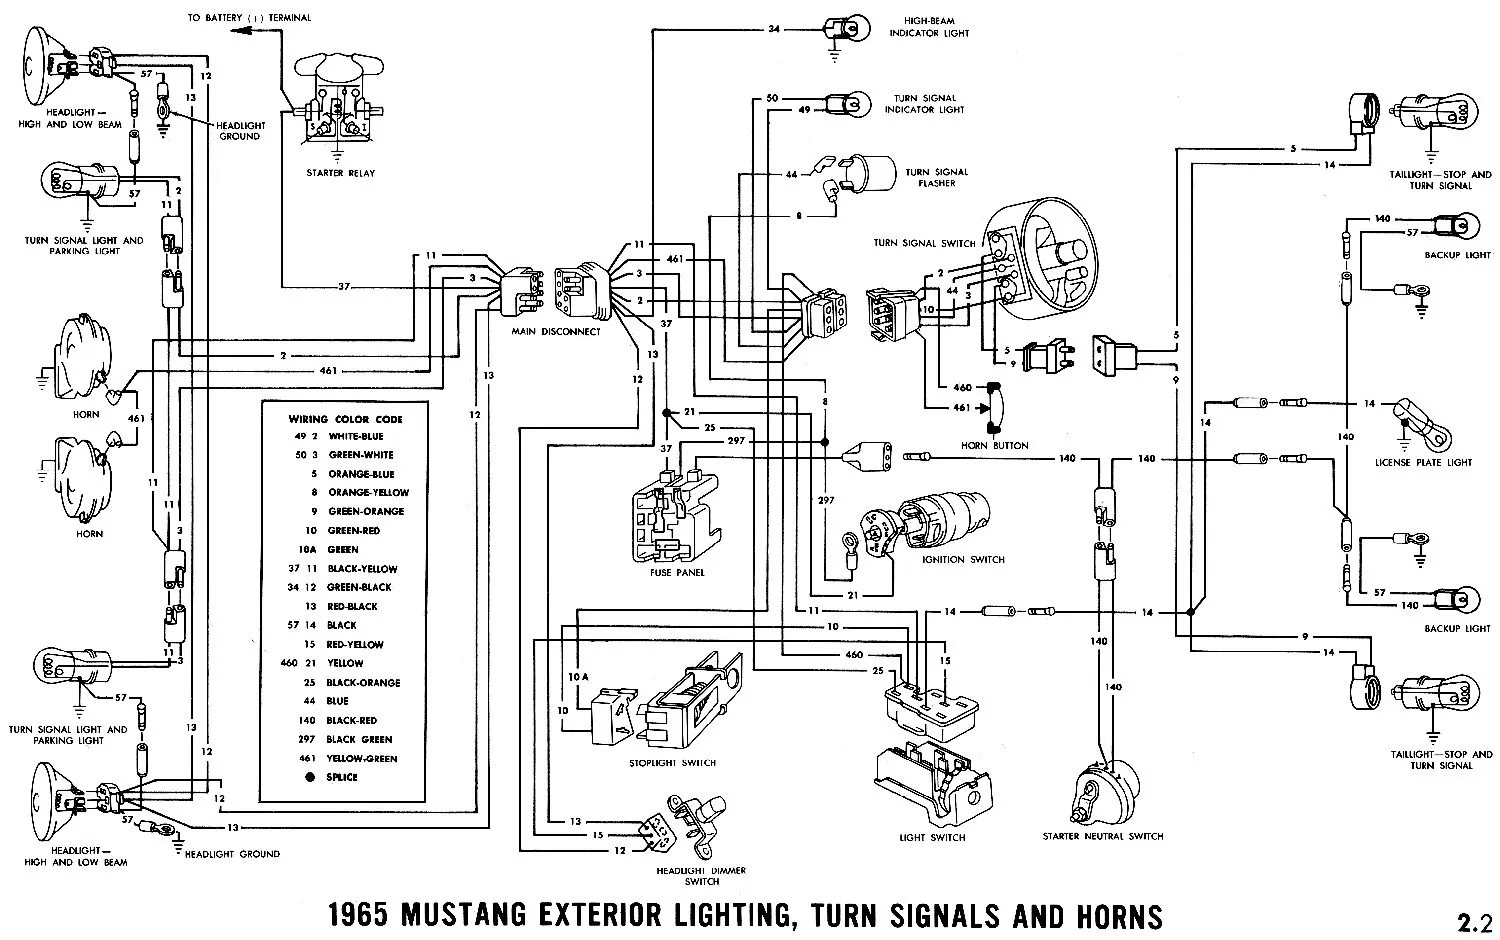 hight resolution of 1968 mustang turn signal wiring diagram wiring diagram technic 1968 mustang turn signal switch diagram wiring schematic